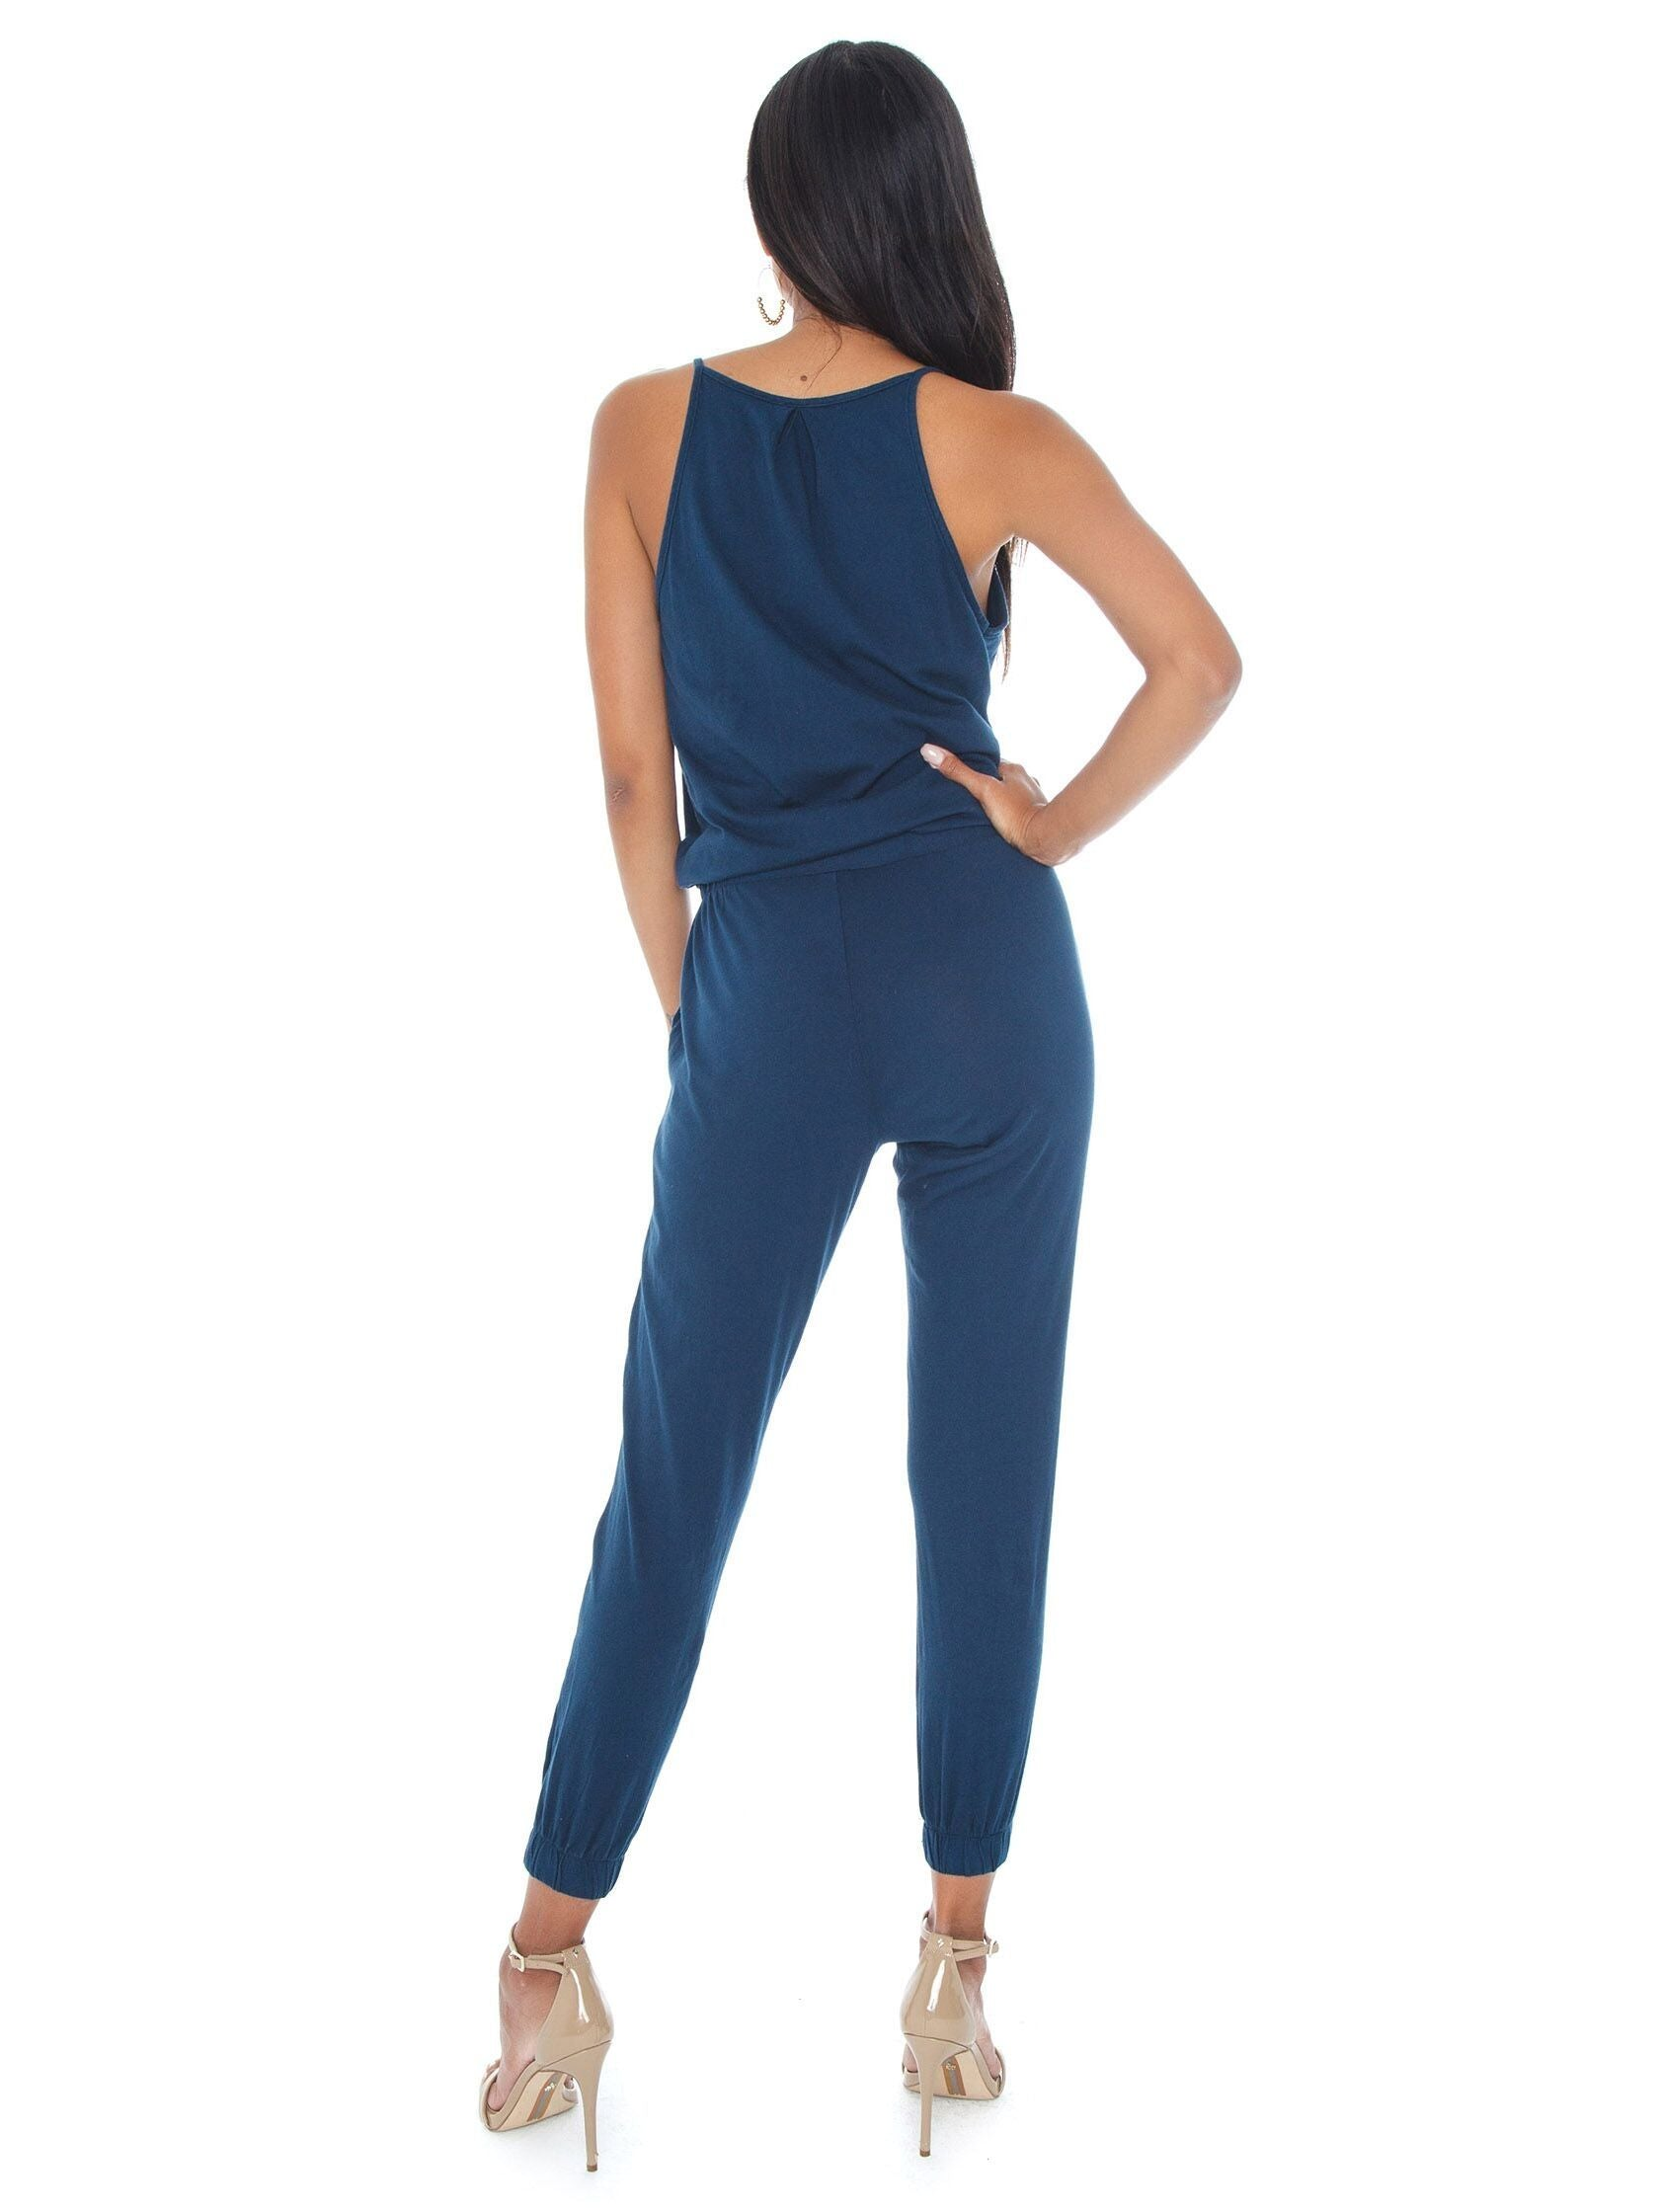 Women wearing a jumpsuit rental from Bobi called Surplice Jumpsuit